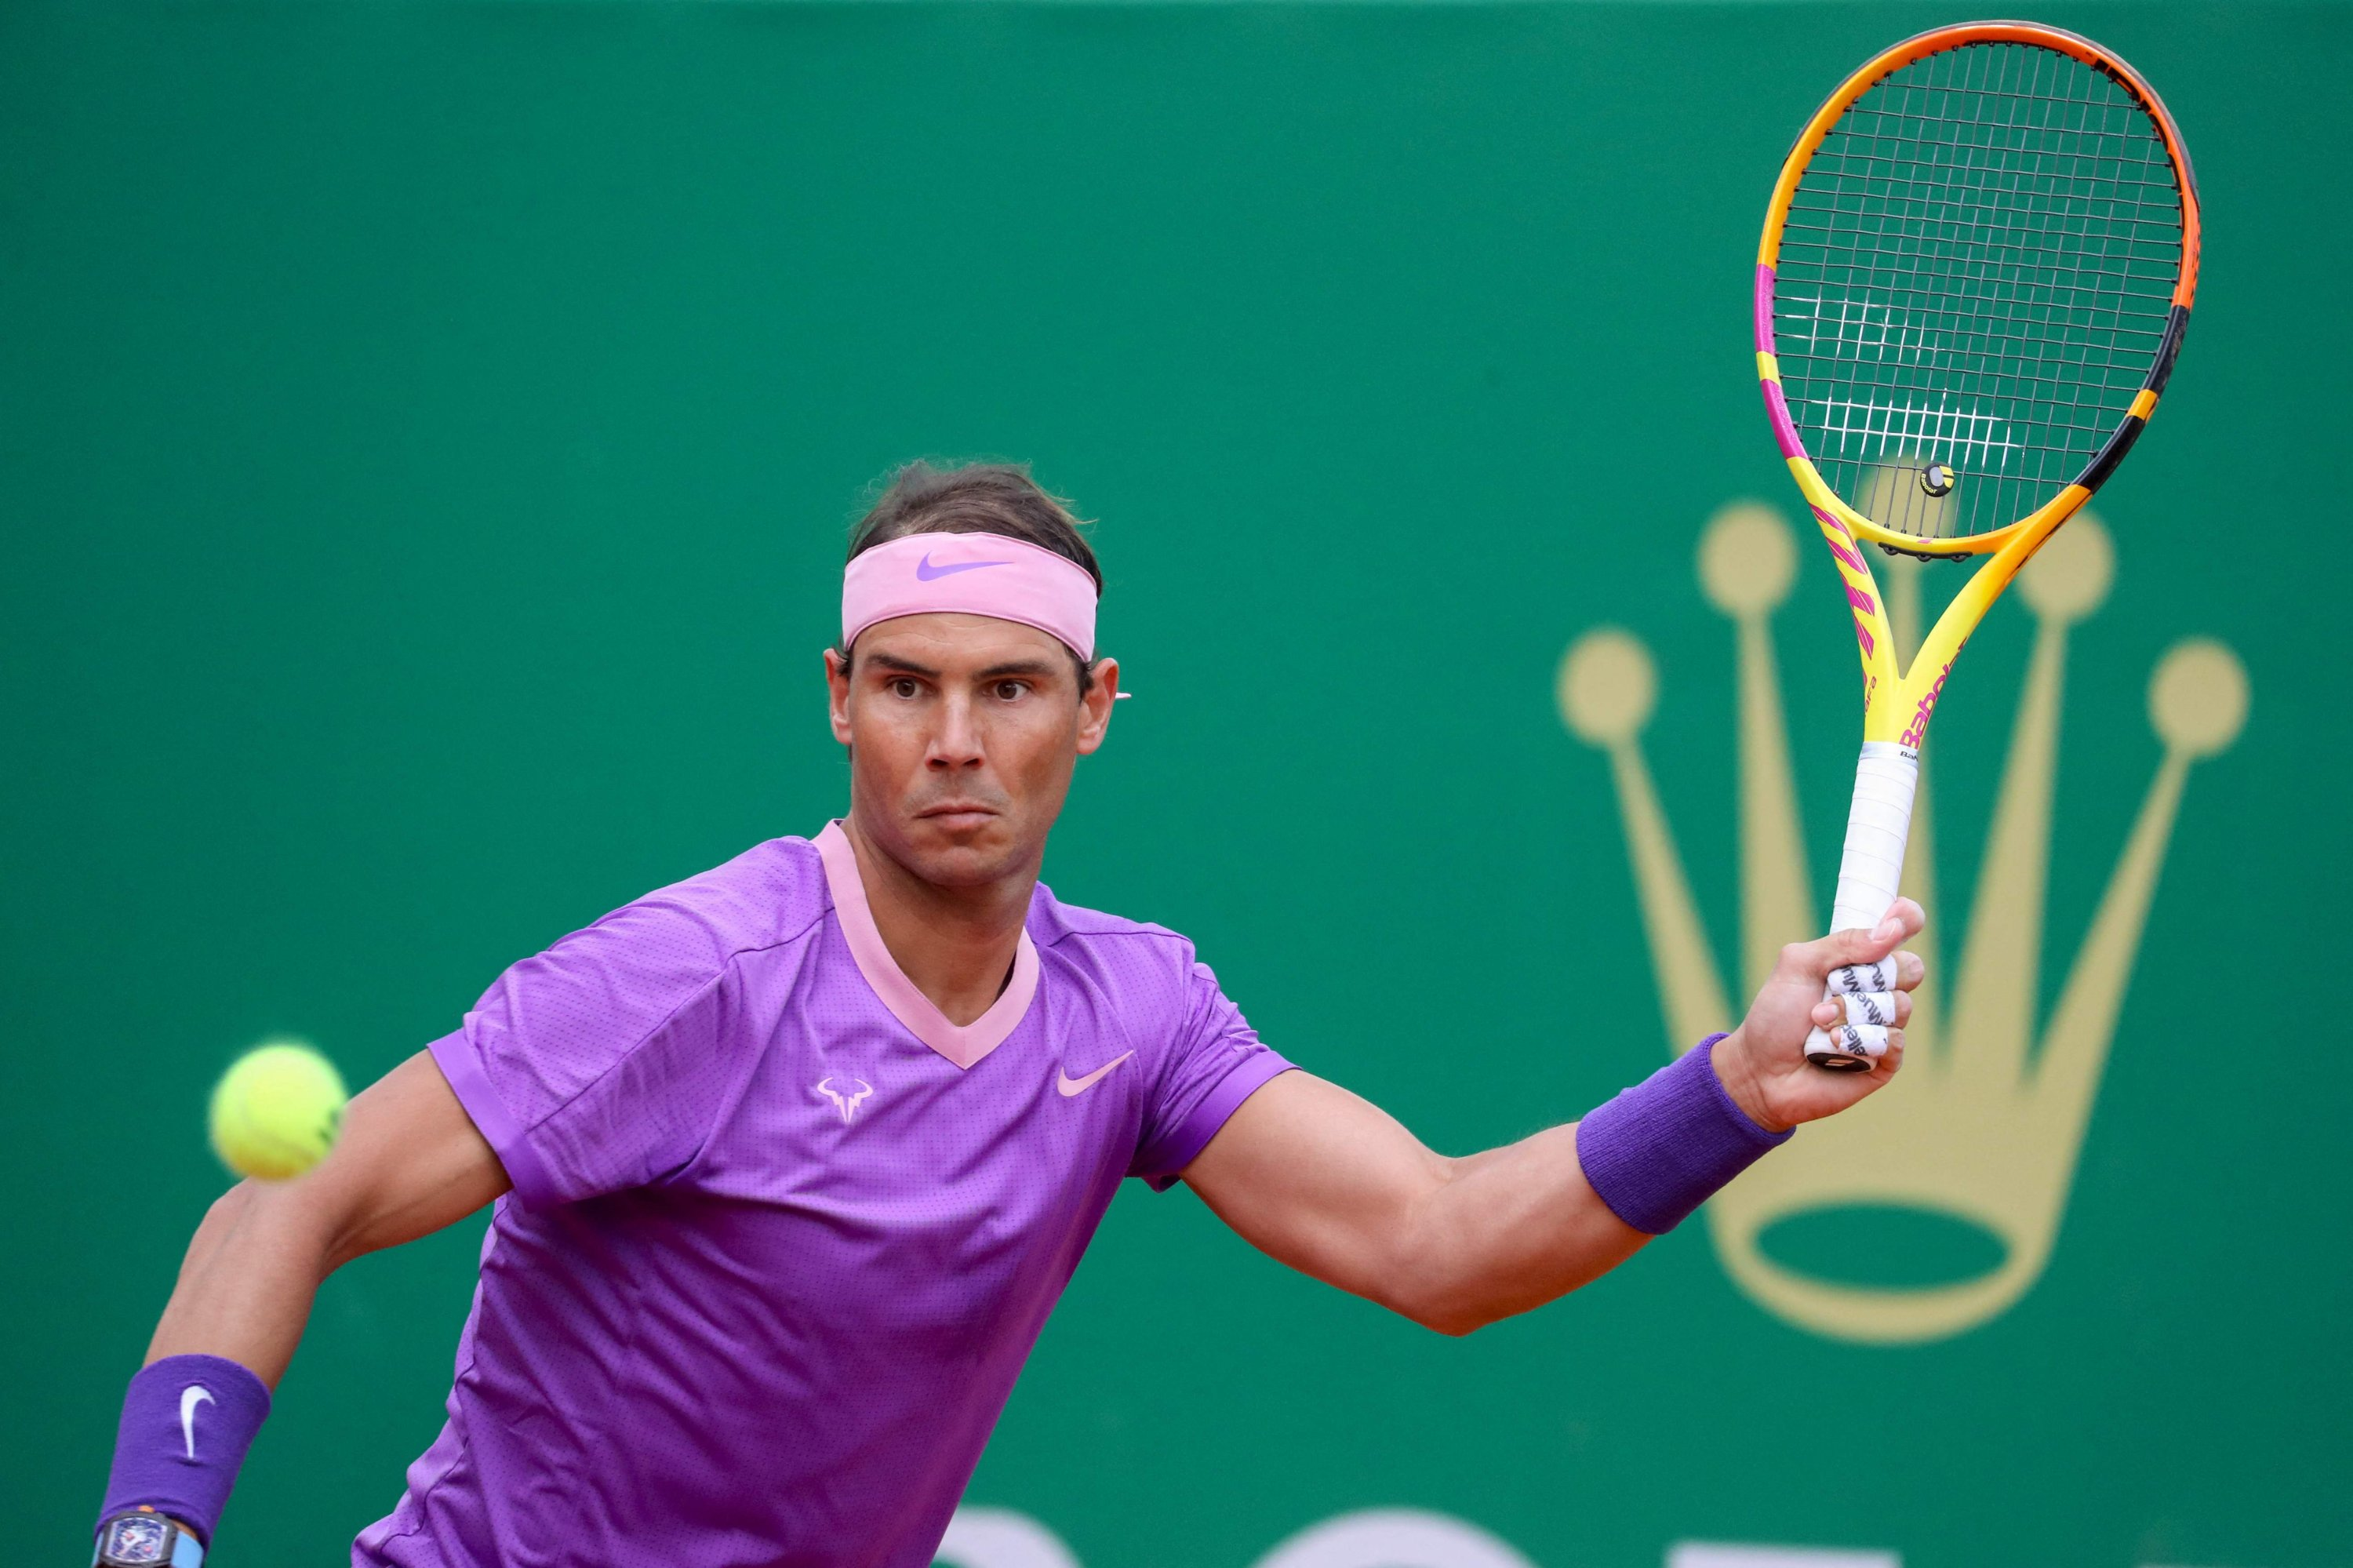 Spain's Rafael Nadal looks at the ball during his second-round singles match against Argentina's Federico Delbonisat the Monte Carlo Masters, Roquebrune Cap Martin, France, April 14, 2021. (AFP Photo)